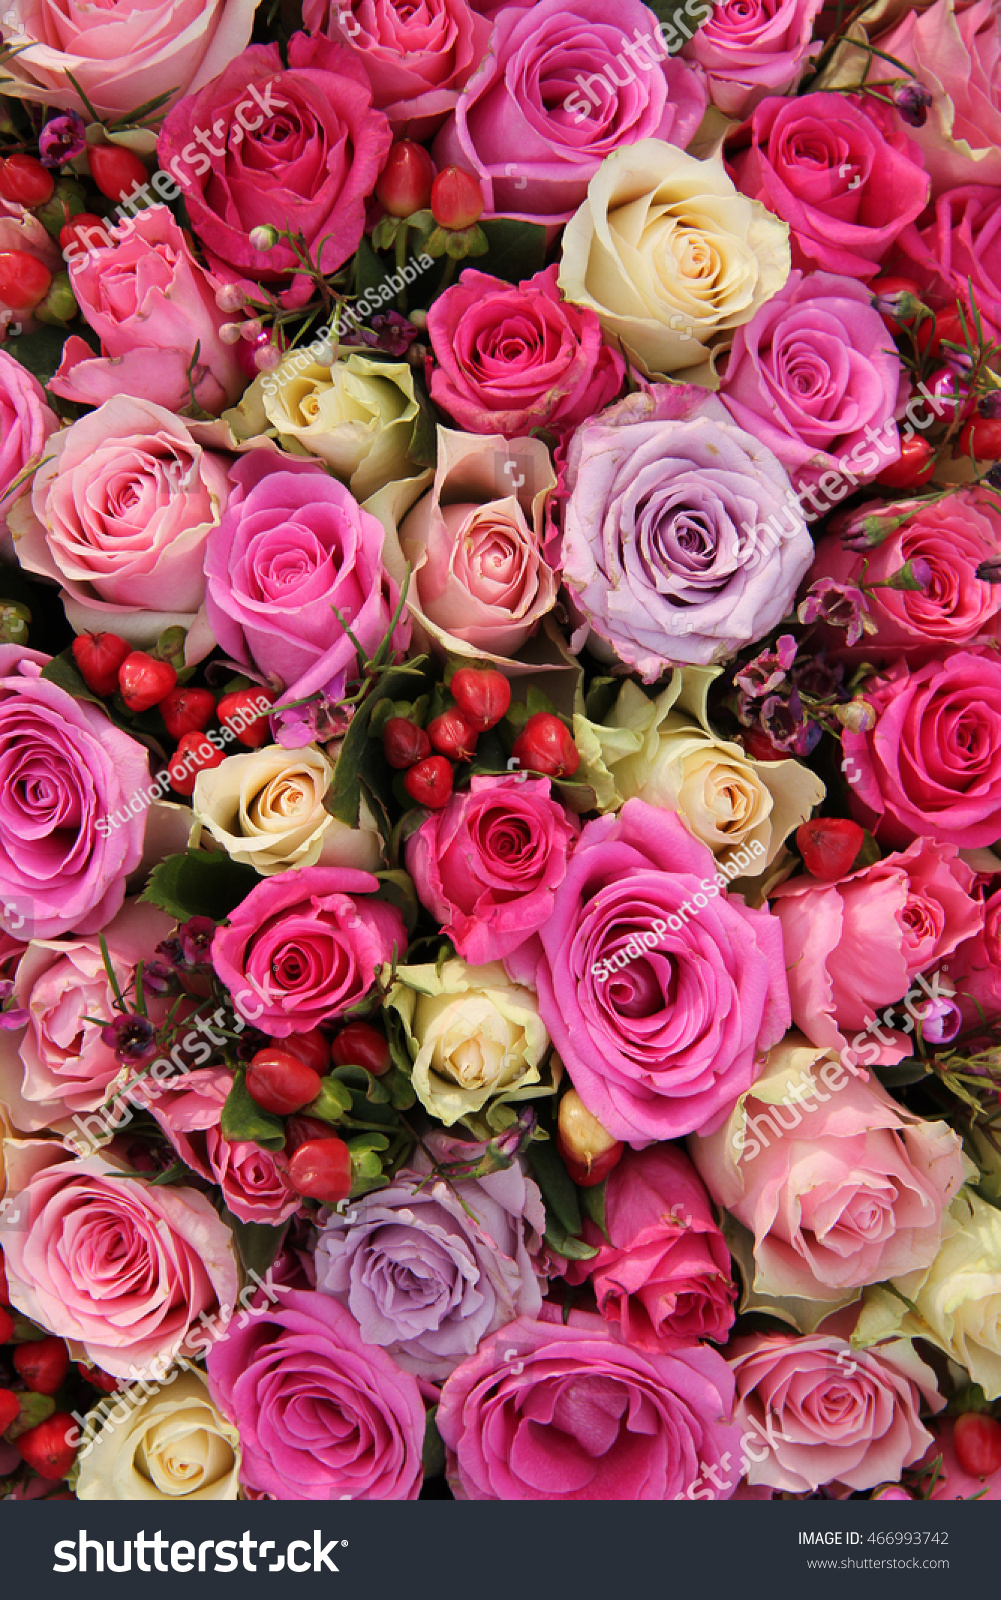 Lathyrus and roses in a pink wedding arrangement | EZ Canvas